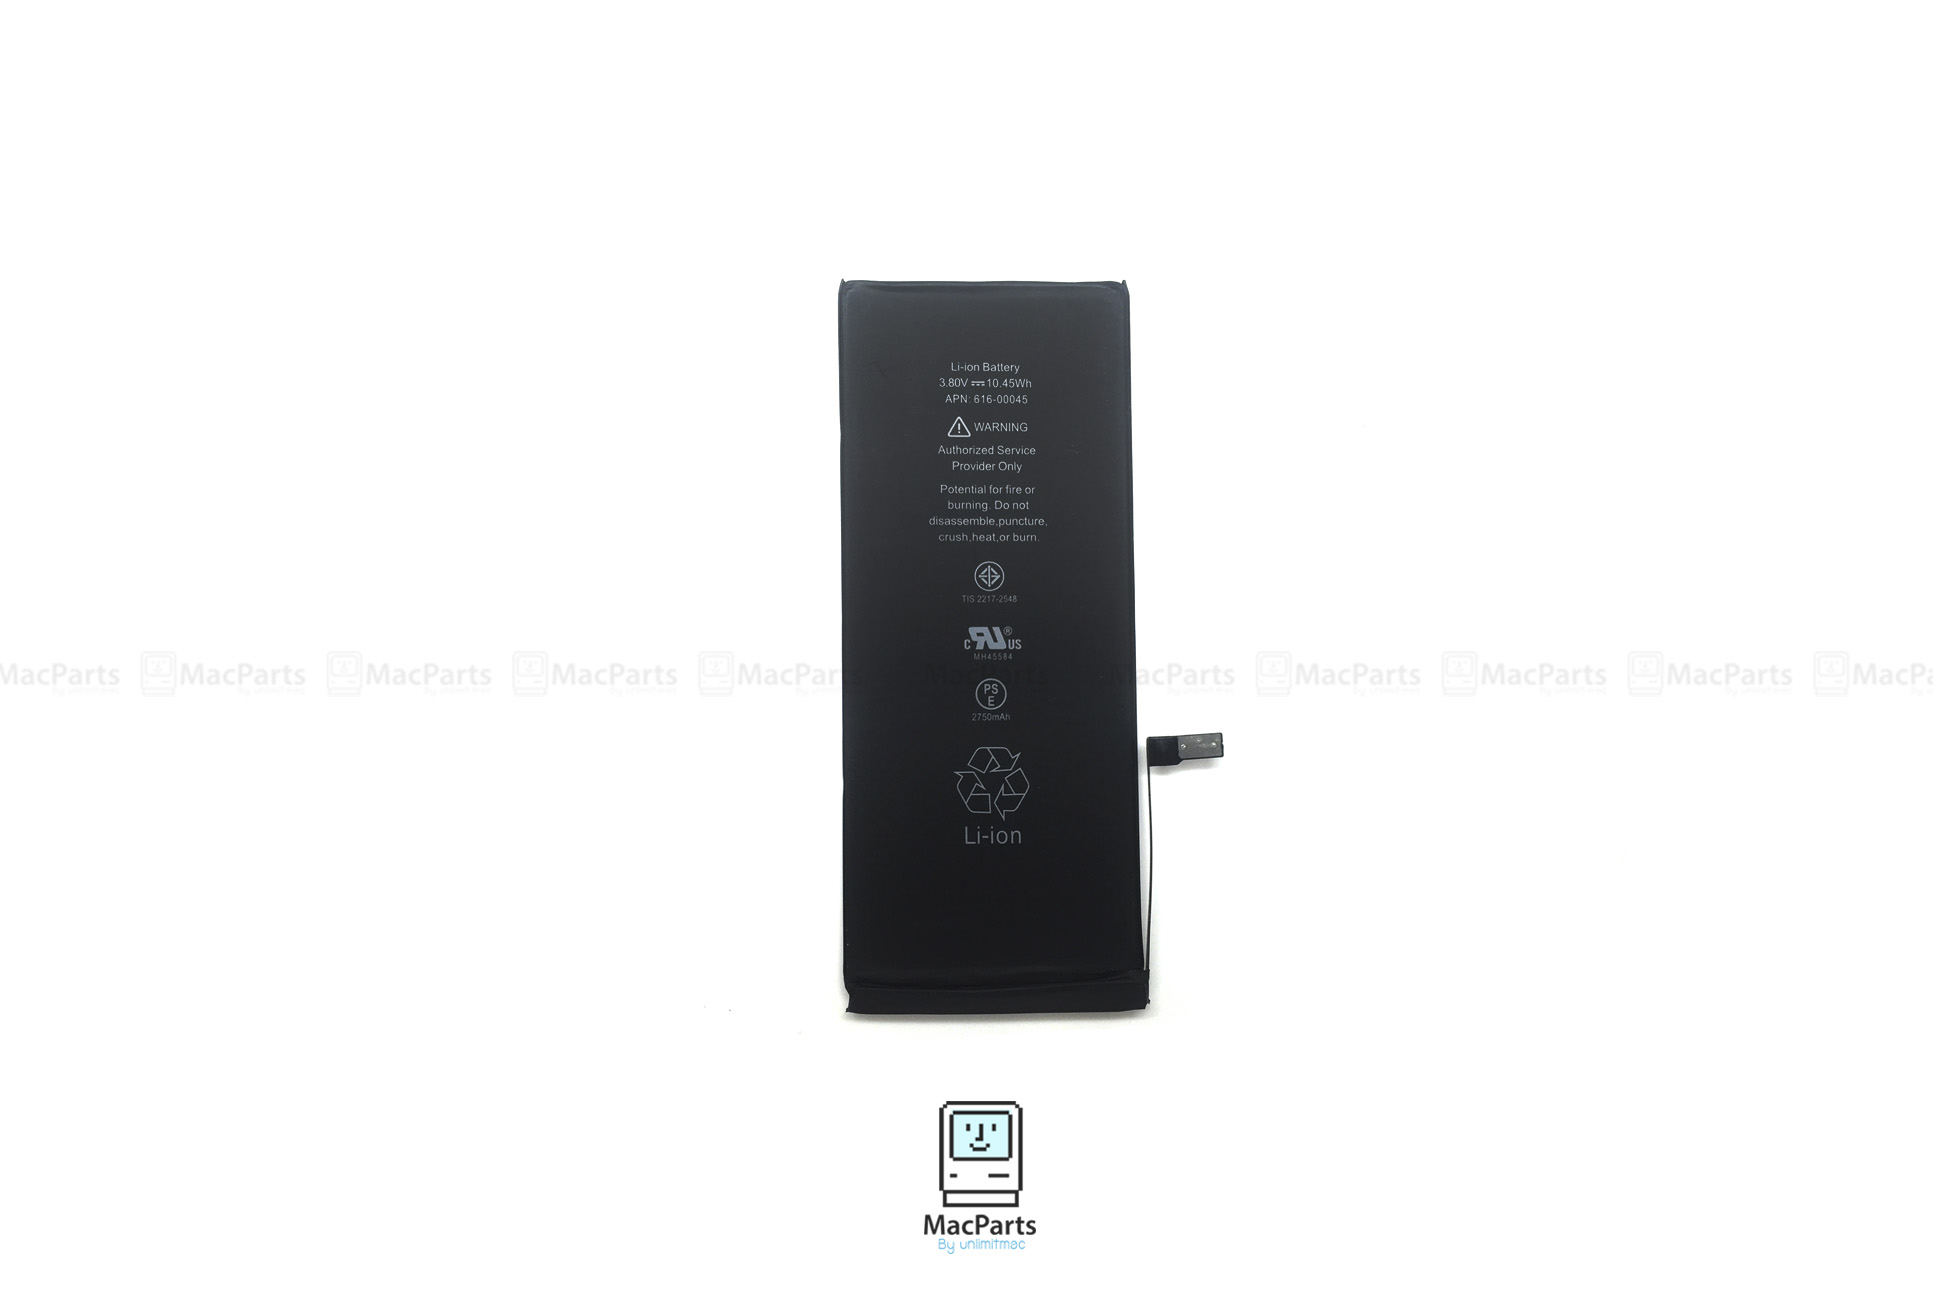 616-00045 Battery For iPhone 6S Plus,แบตเตอรี่ไอโฟน 6S Plus